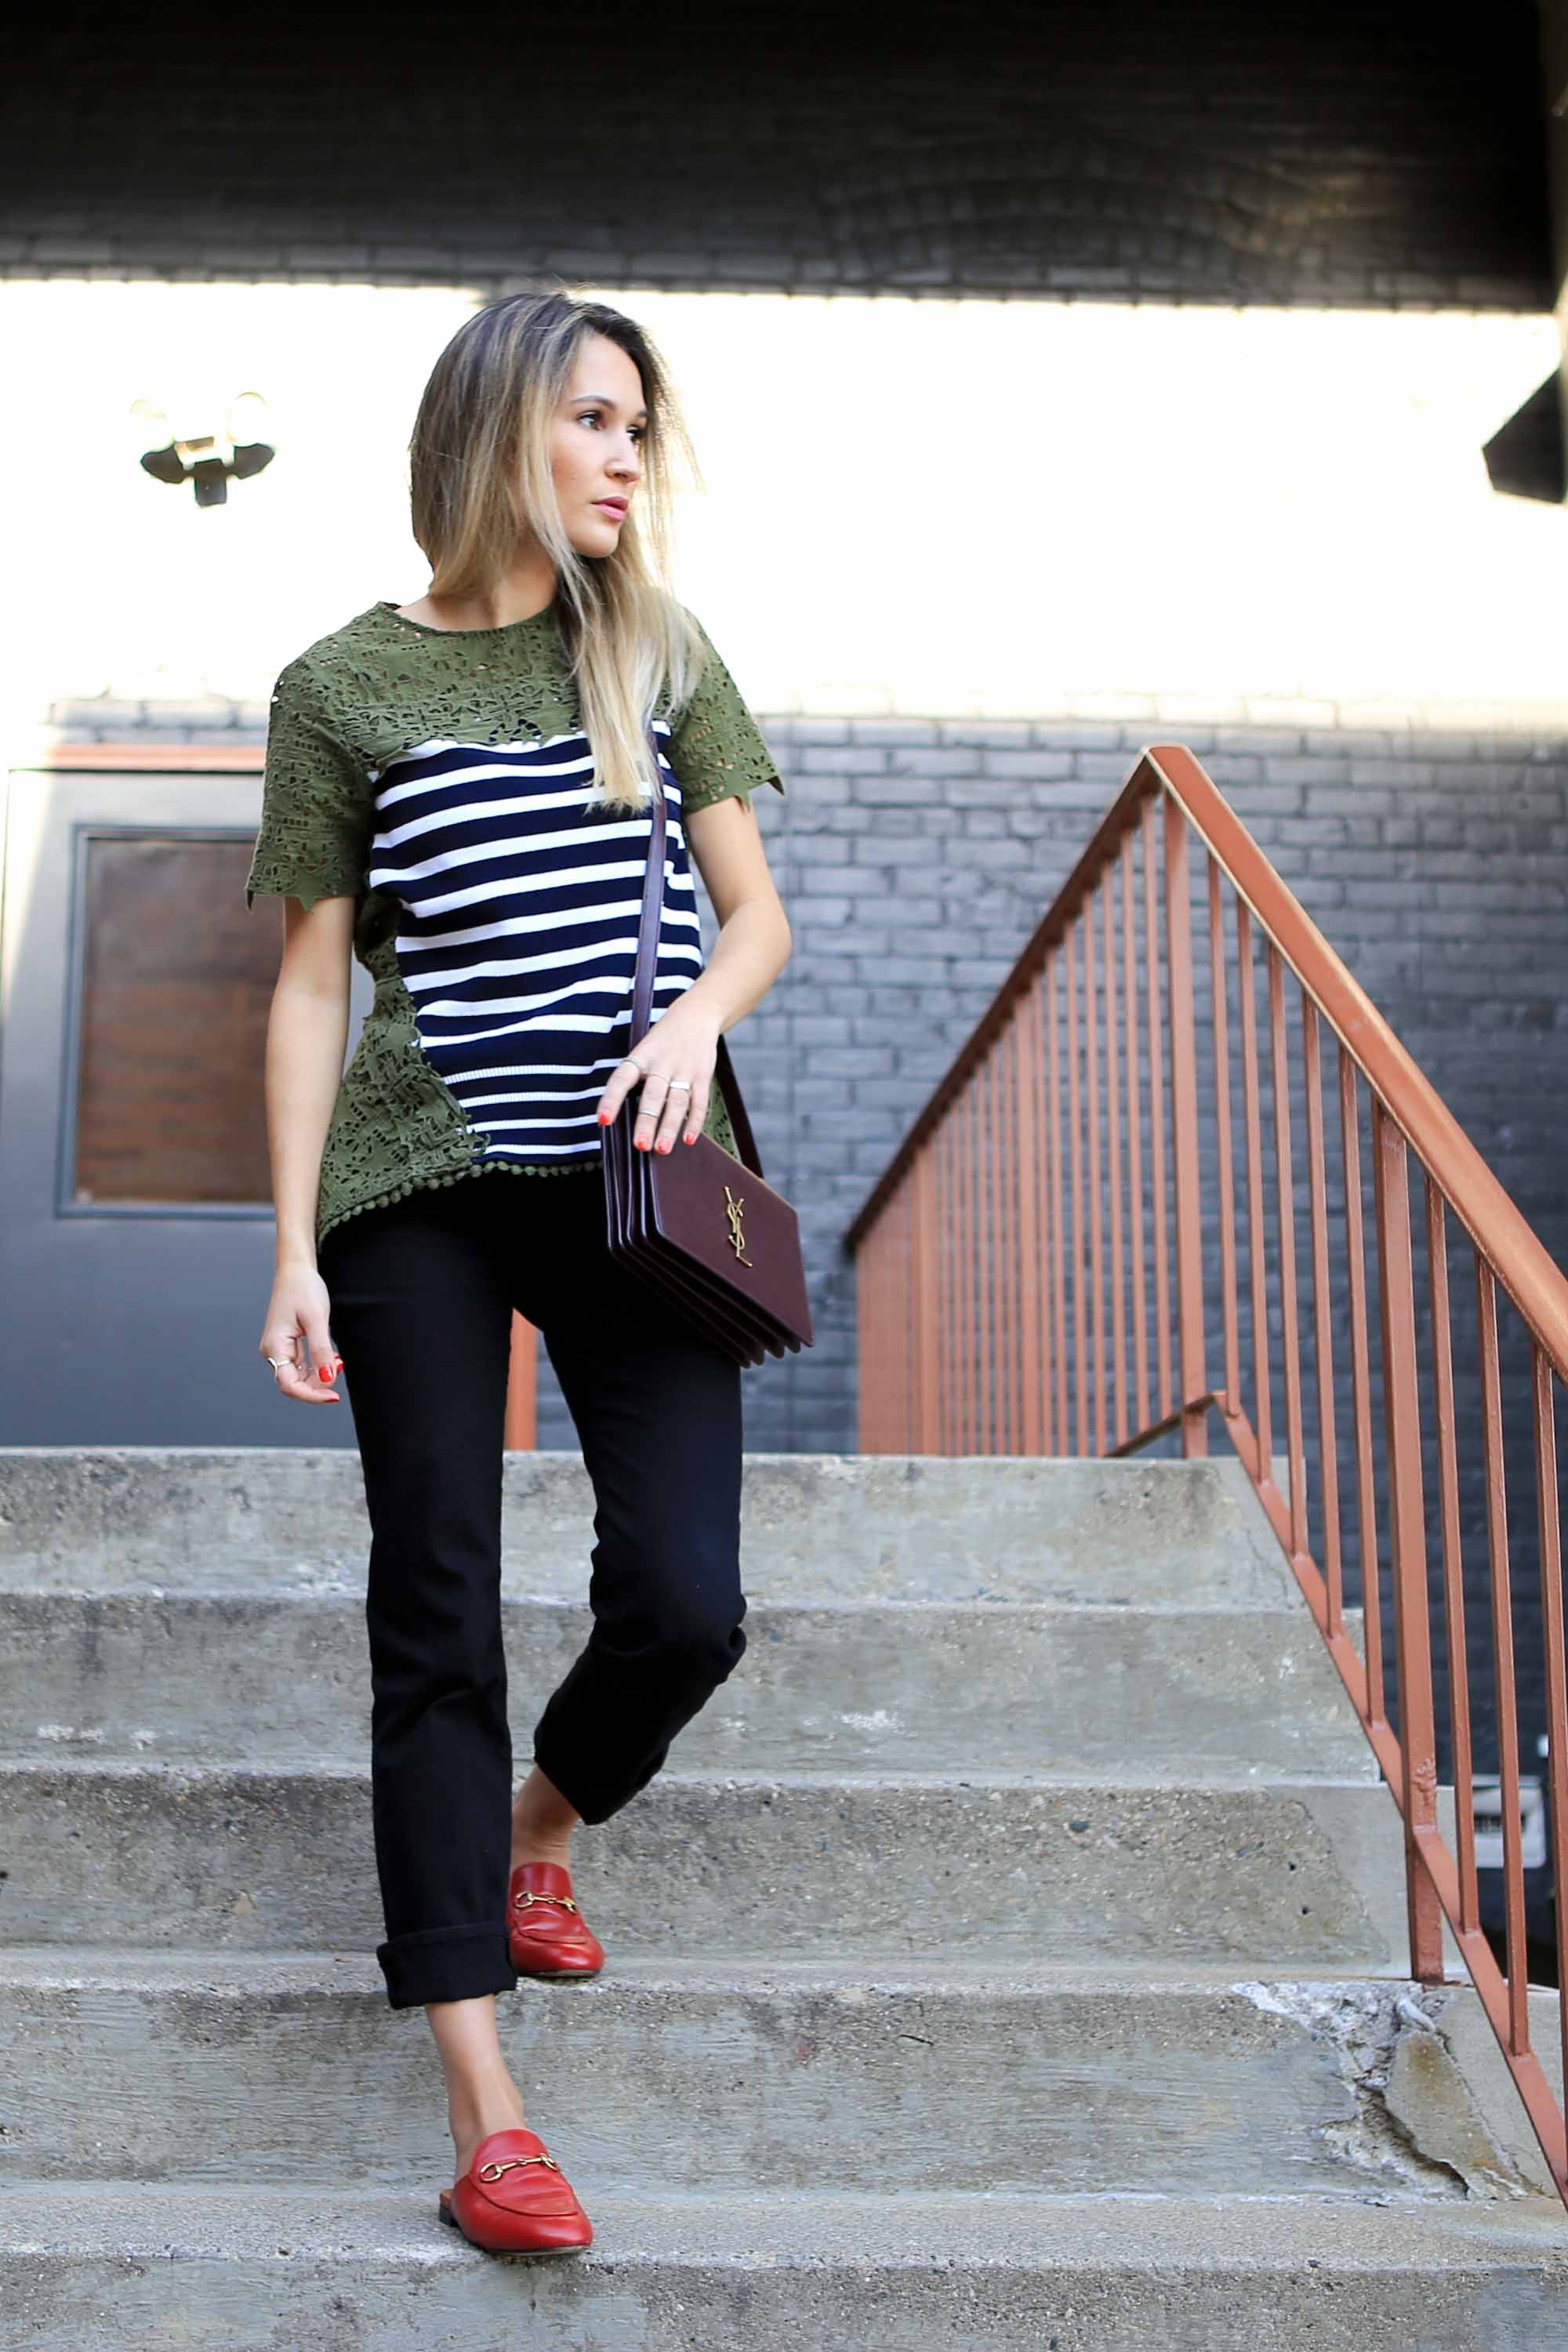 GET THE LOOK - TOP - THEORY OF GAIABAG - SAINT LAURENTJEANS - FRAMESHOES - GUCCI